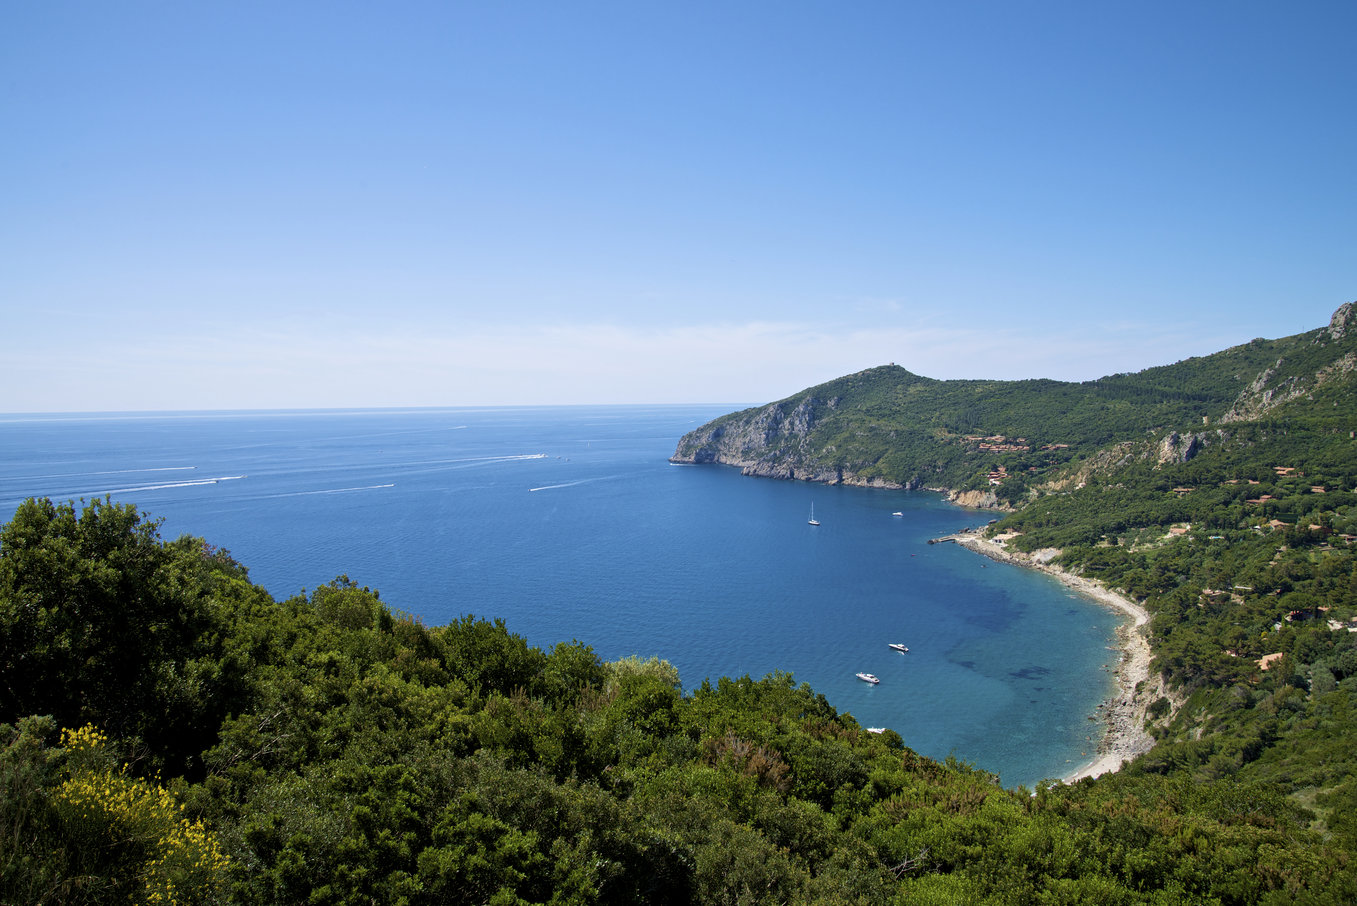 Creek and blue water of mediterranean sea in argentario - maremma - tuscany - Italy